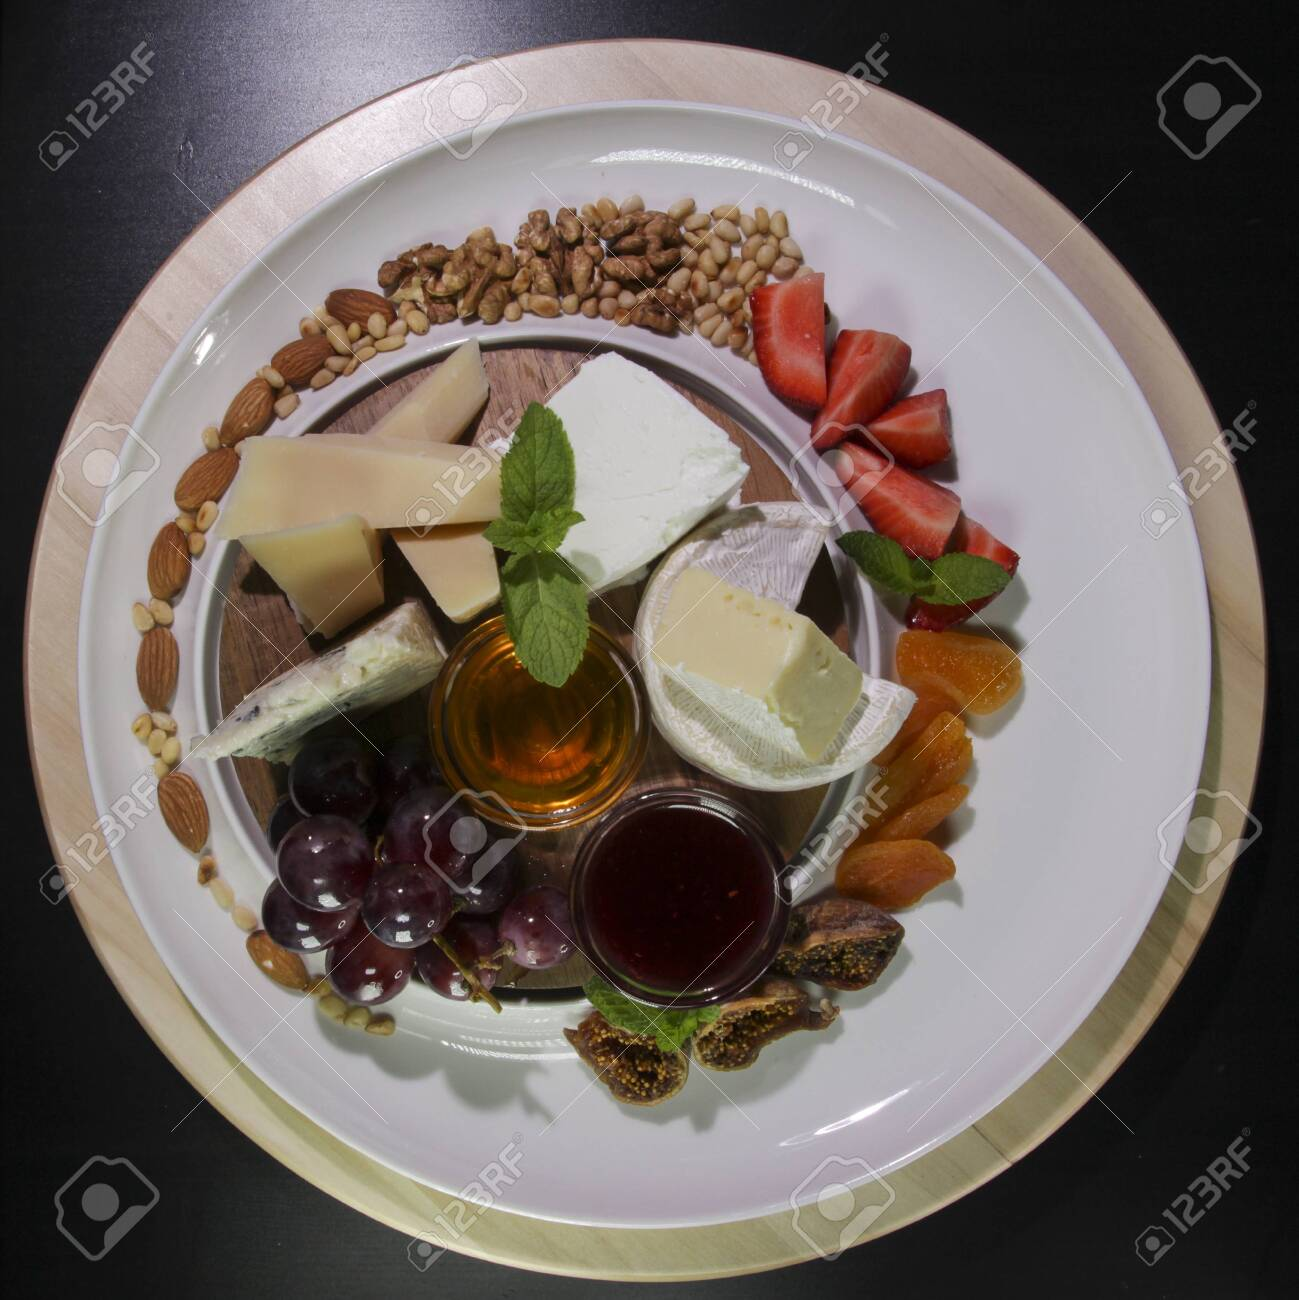 Cheese plate.Isolated on a black background.View from above. - 142255471